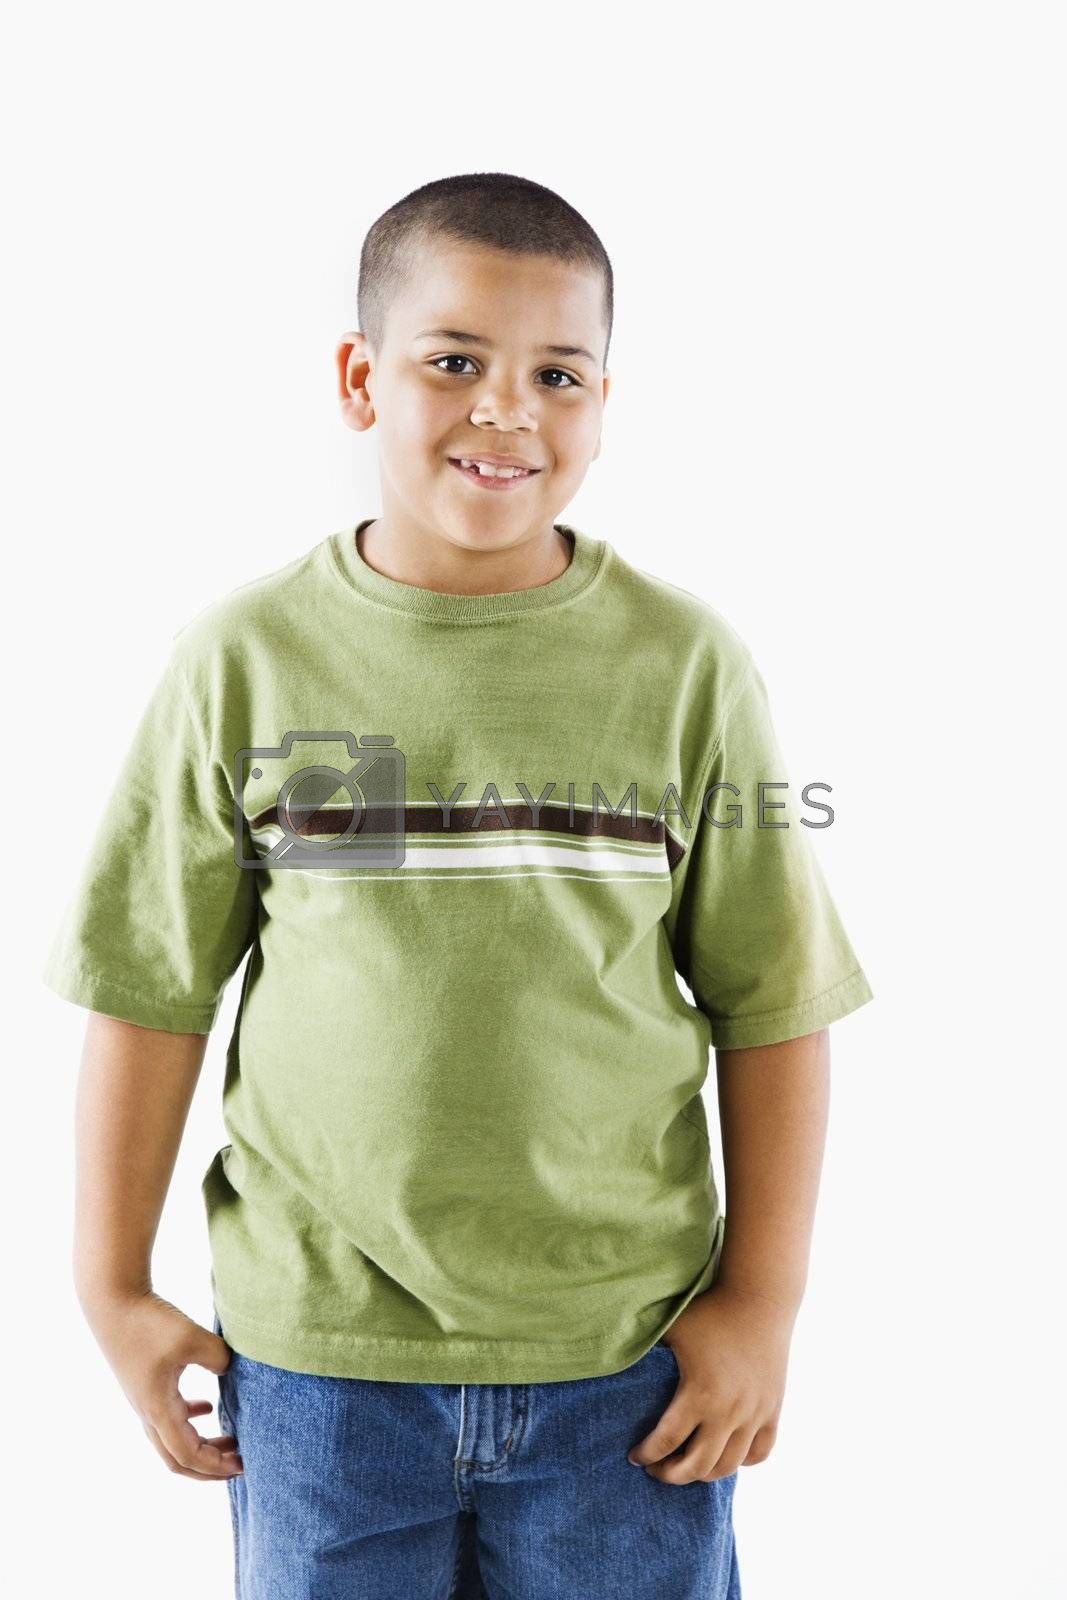 Young latino adolescent boy standing smiling.